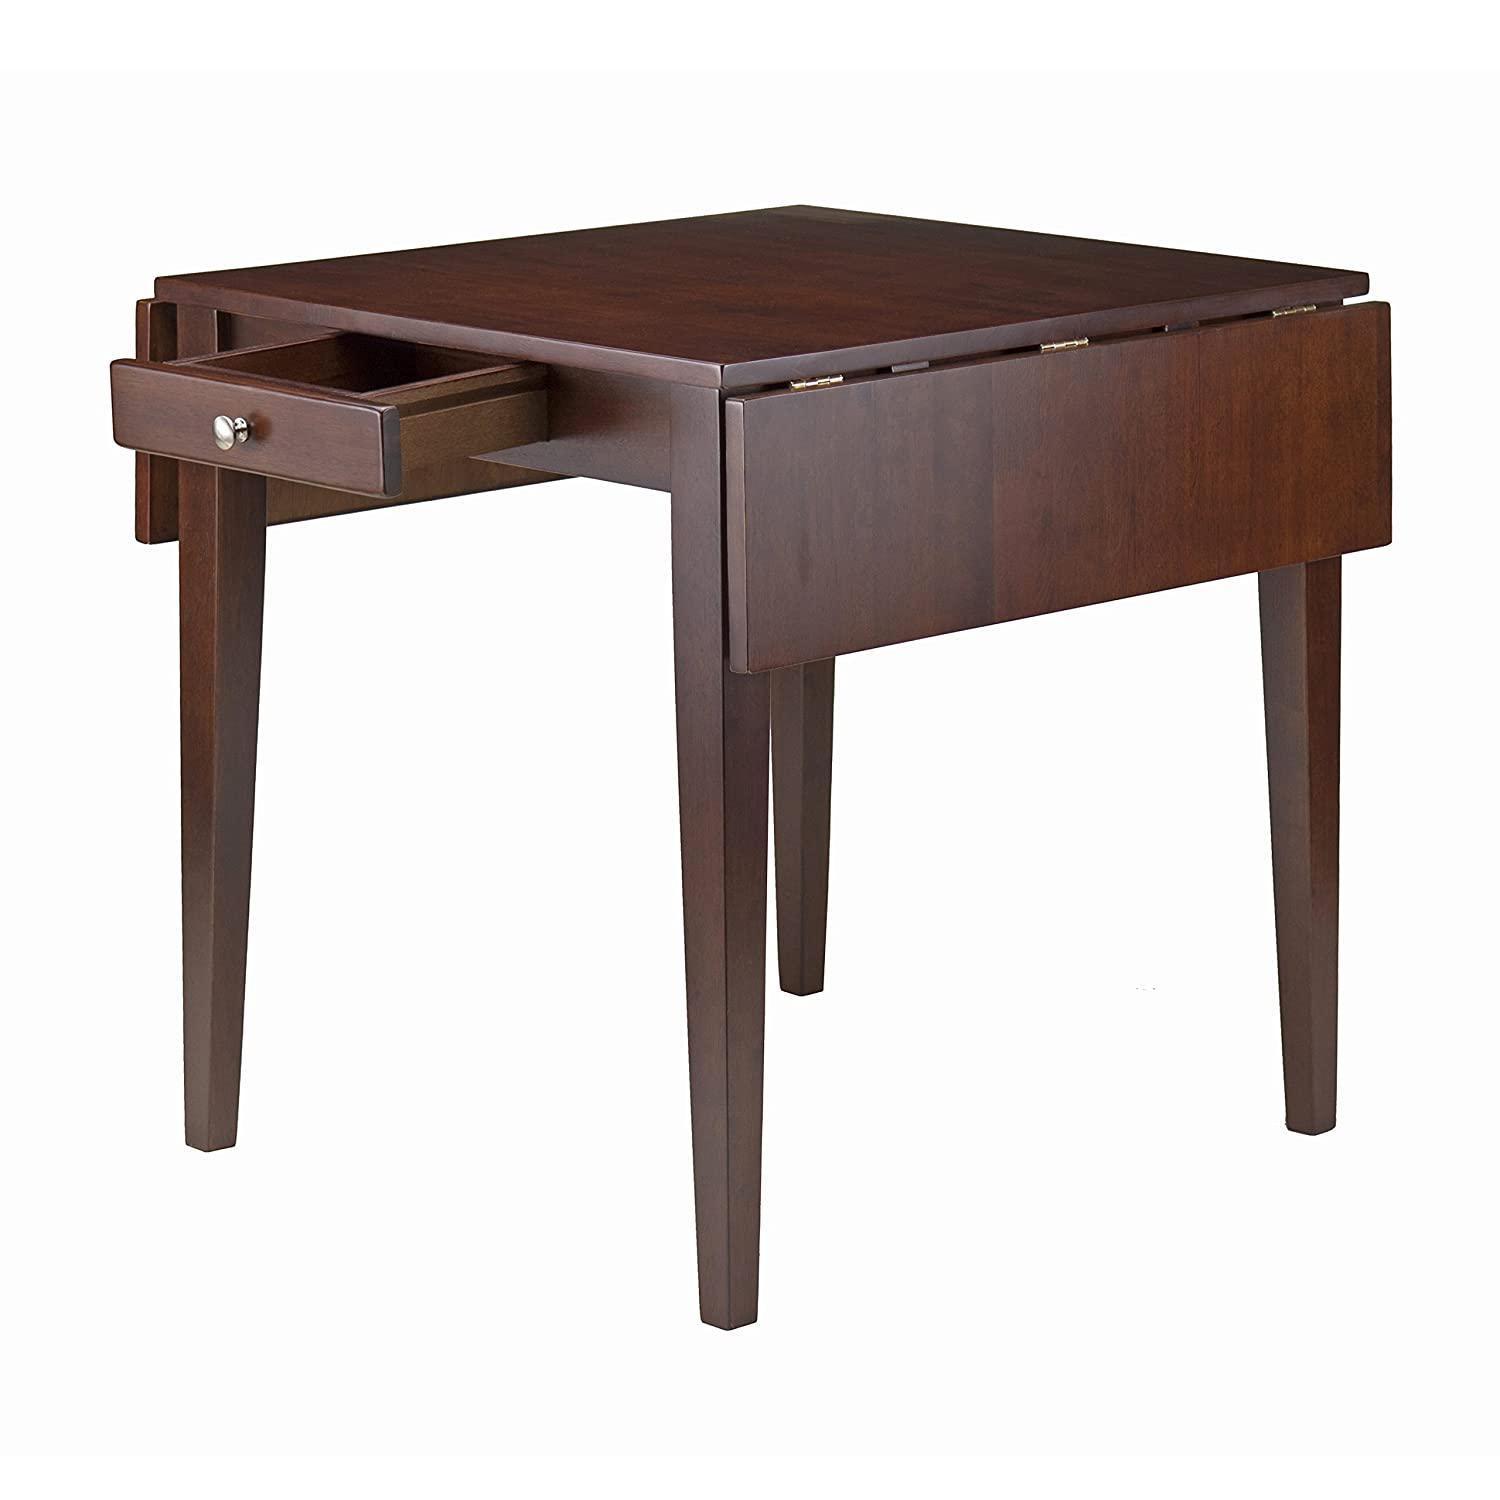 Amazon.com   Winsome Wood Hamilton Double Drop Leaf Dining Table   Tables